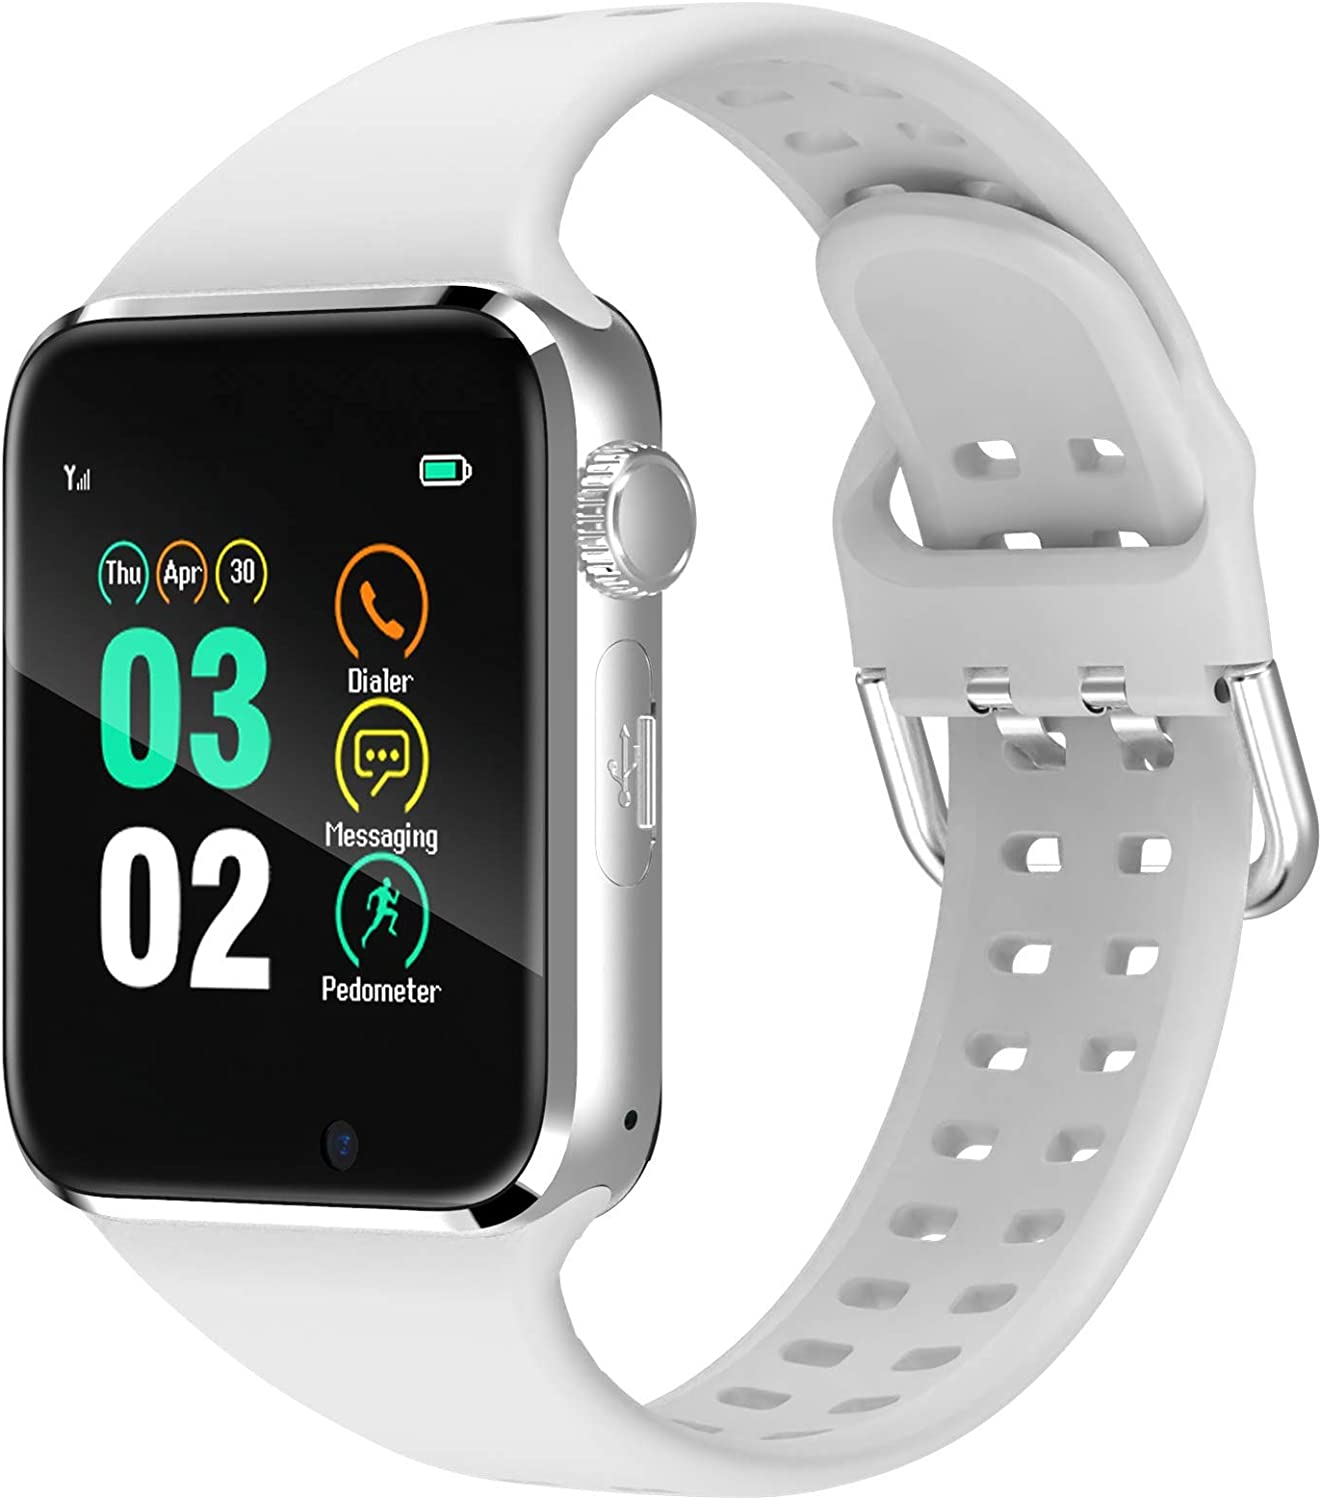 321OU Smart Watch for Android iOS Phones Compatible iPhone Samsung, Bluetooth Smartwatch Fitness Tracker Watch with SIM/SD Card Slot Camera Pedometer for Men Women (White)